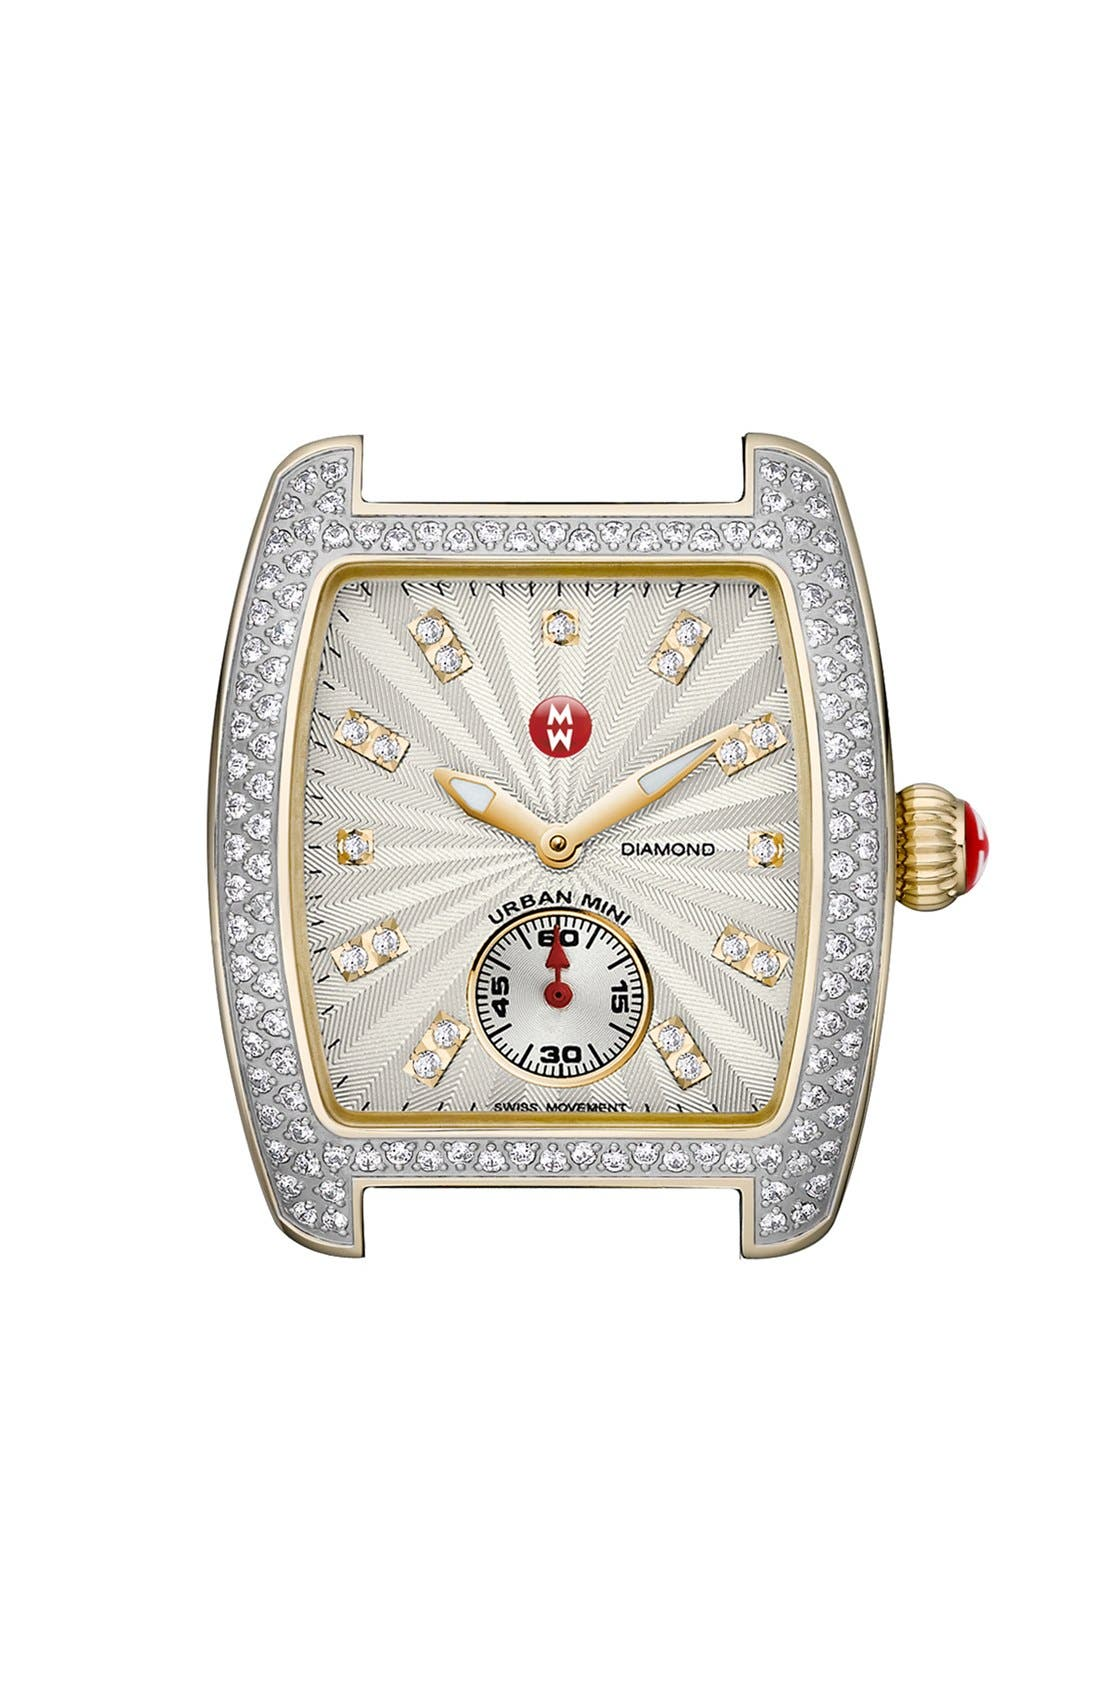 Alternate Image 1 Selected - MICHELE 'Urban Mini Diamond' Two-Tone Watch Case, 29mm x 30mm